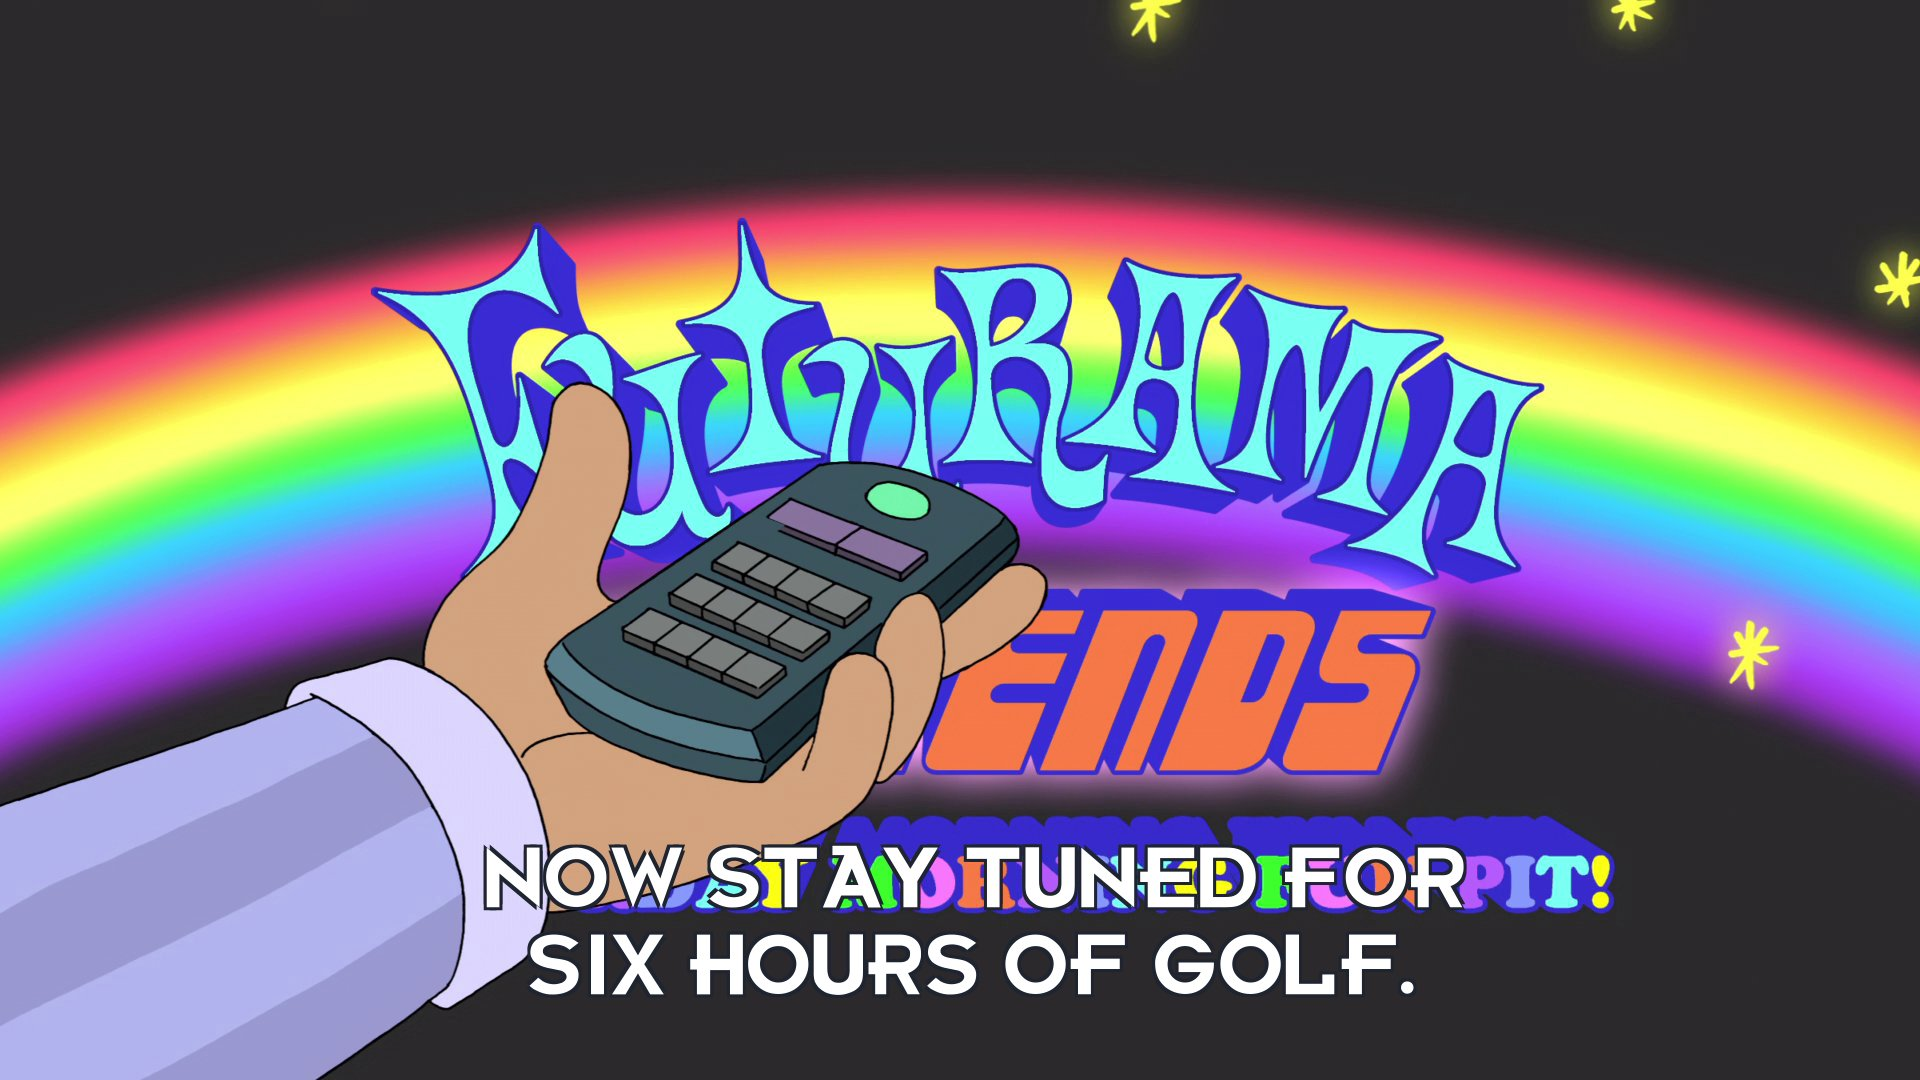 Announcer: Now stay tuned for six hours of golf.